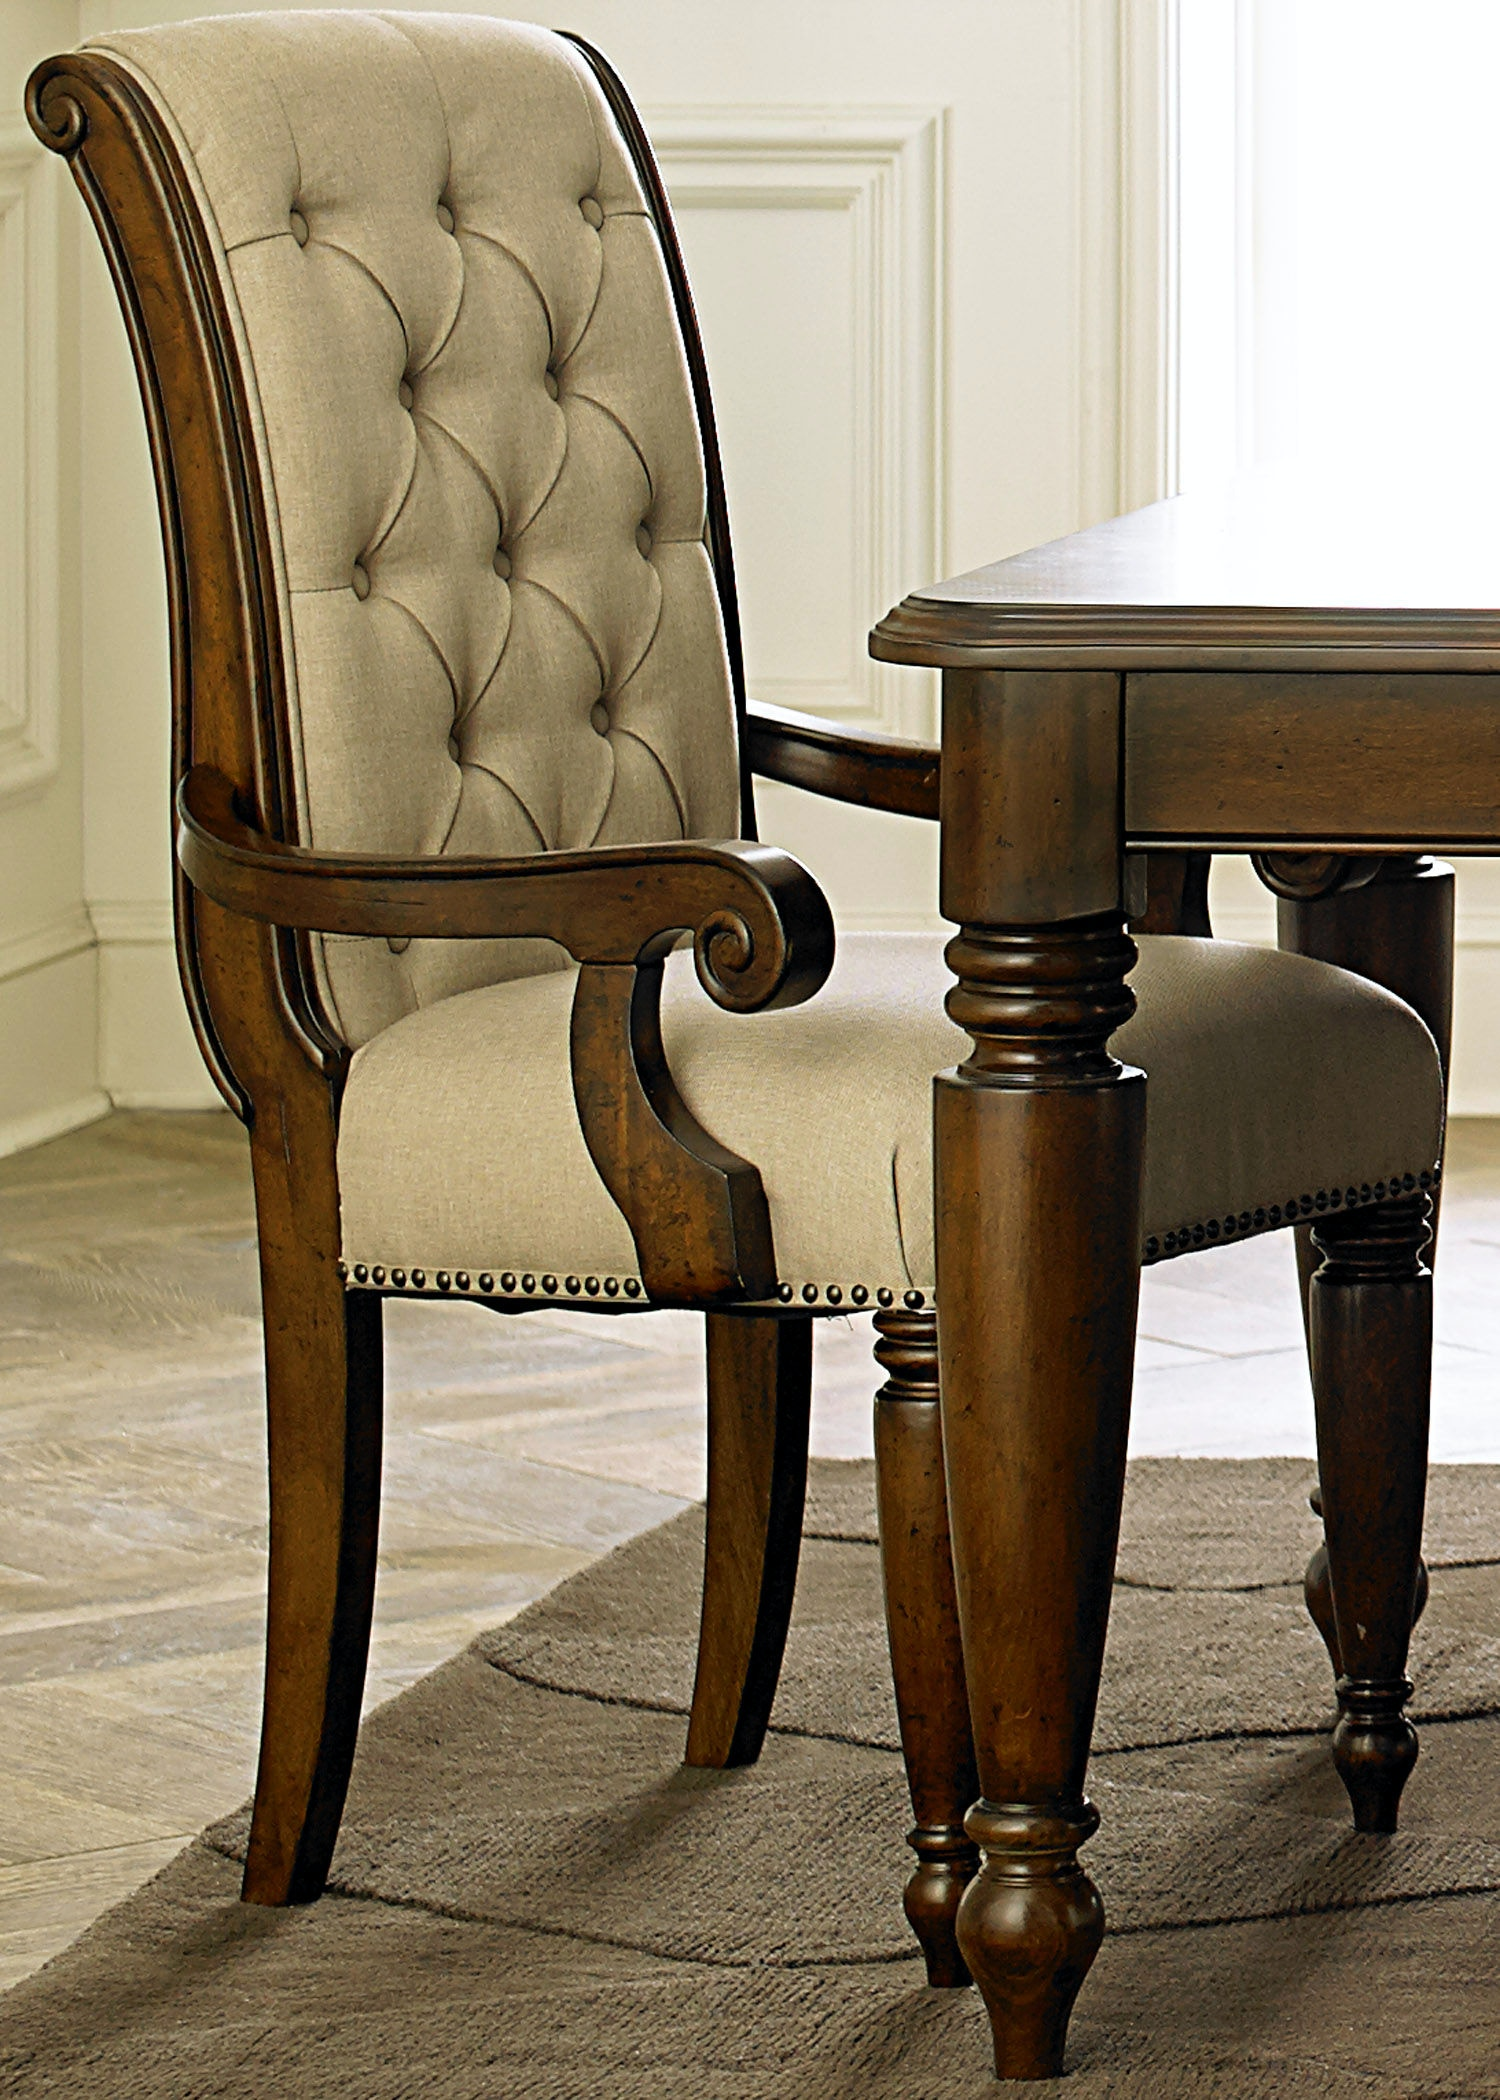 Awesome Liberty Furniture Dining Room Uph Arm Chair (RTA) 545 C6501A   Turner  Furniture Company   Avon Park And Sebring, FL